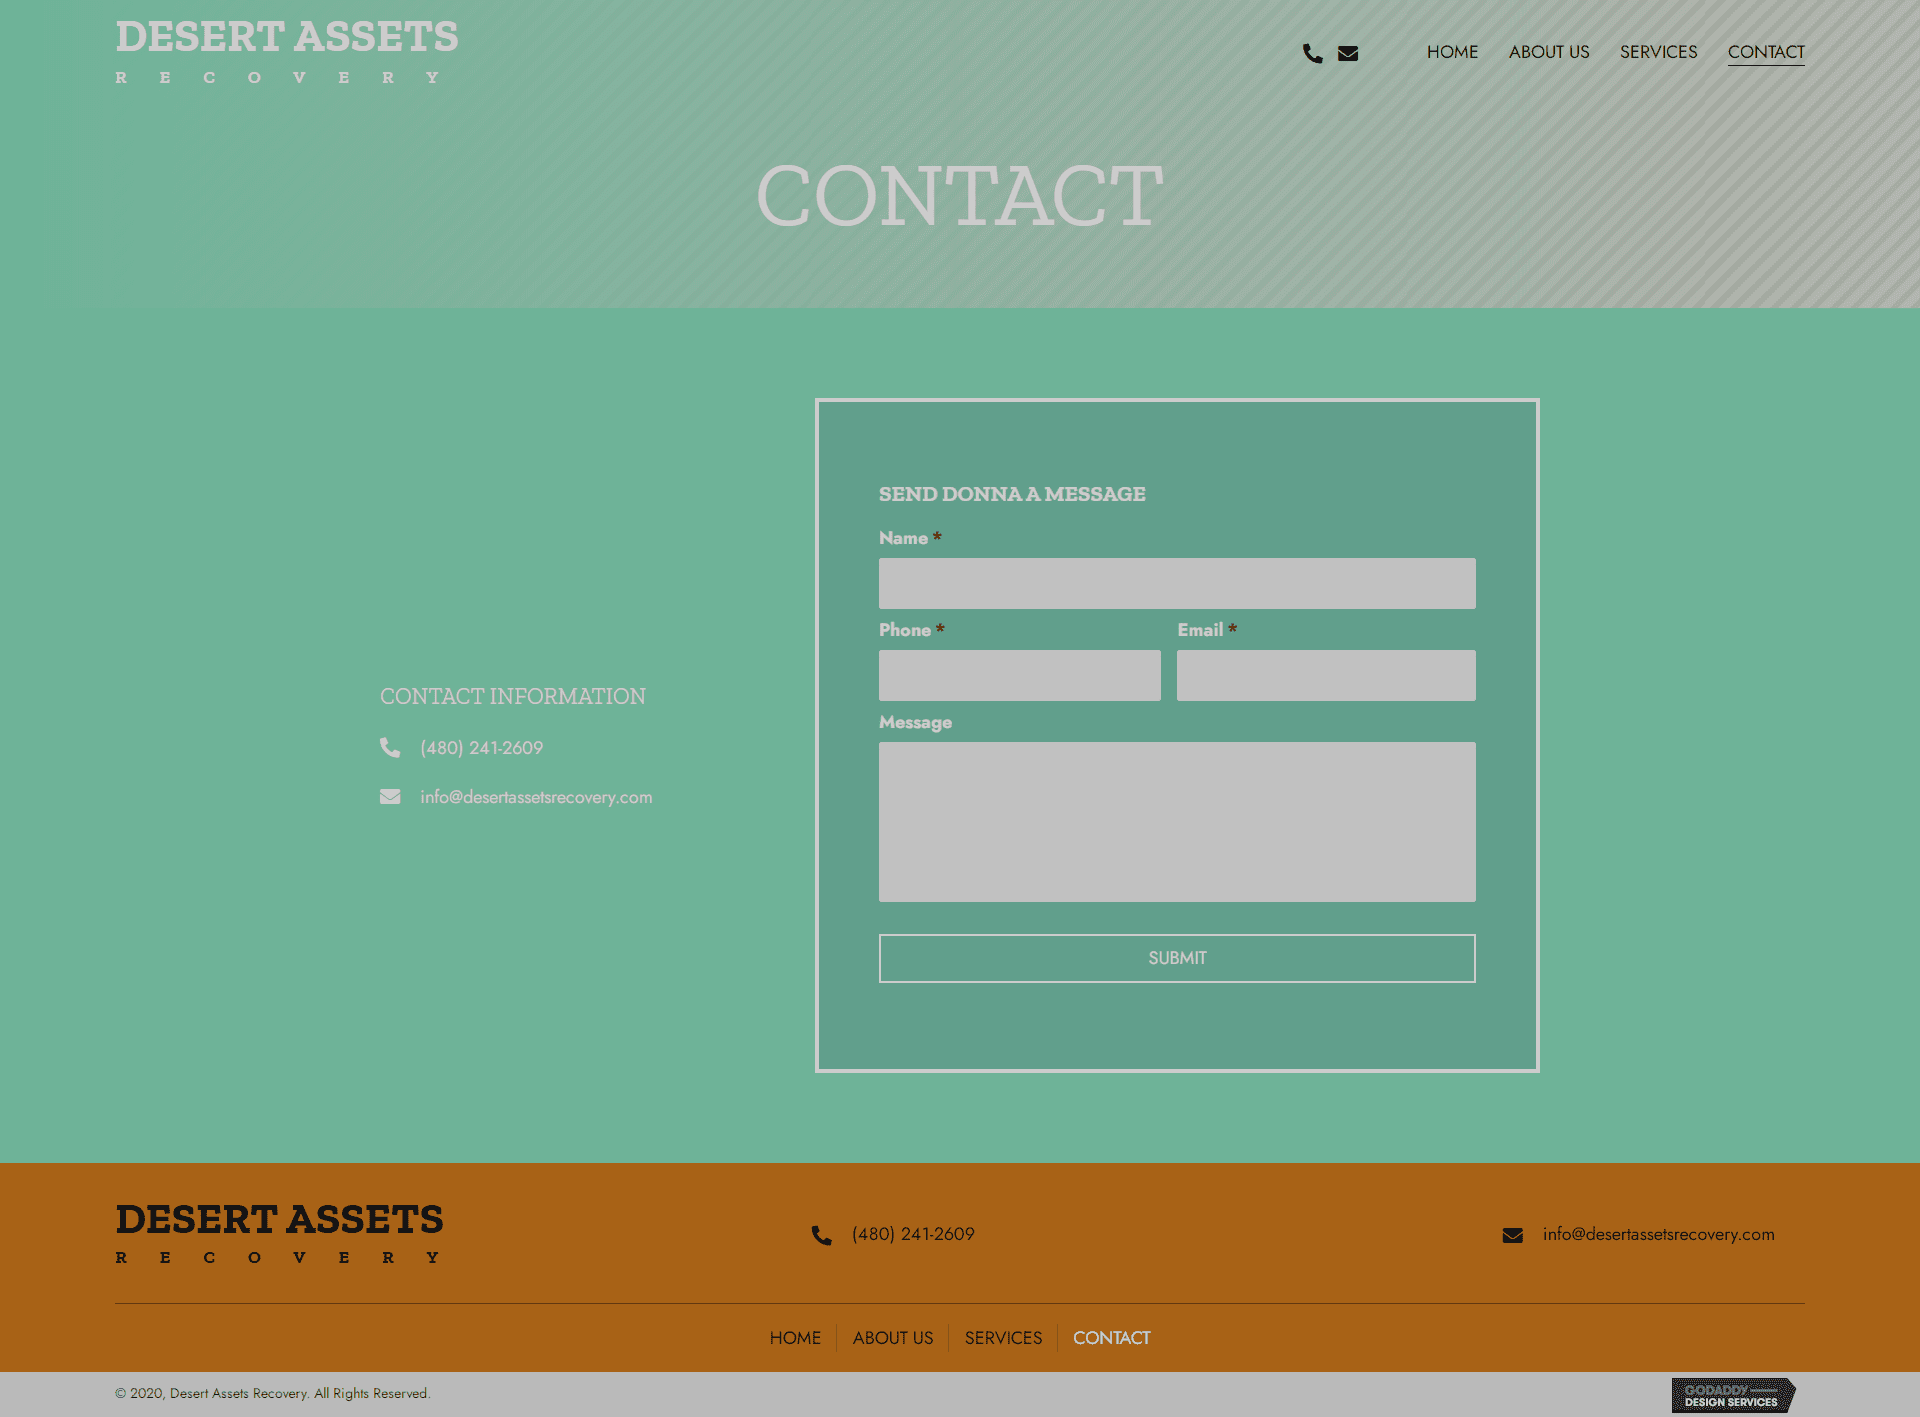 Desert Assets Recovery Contact Page